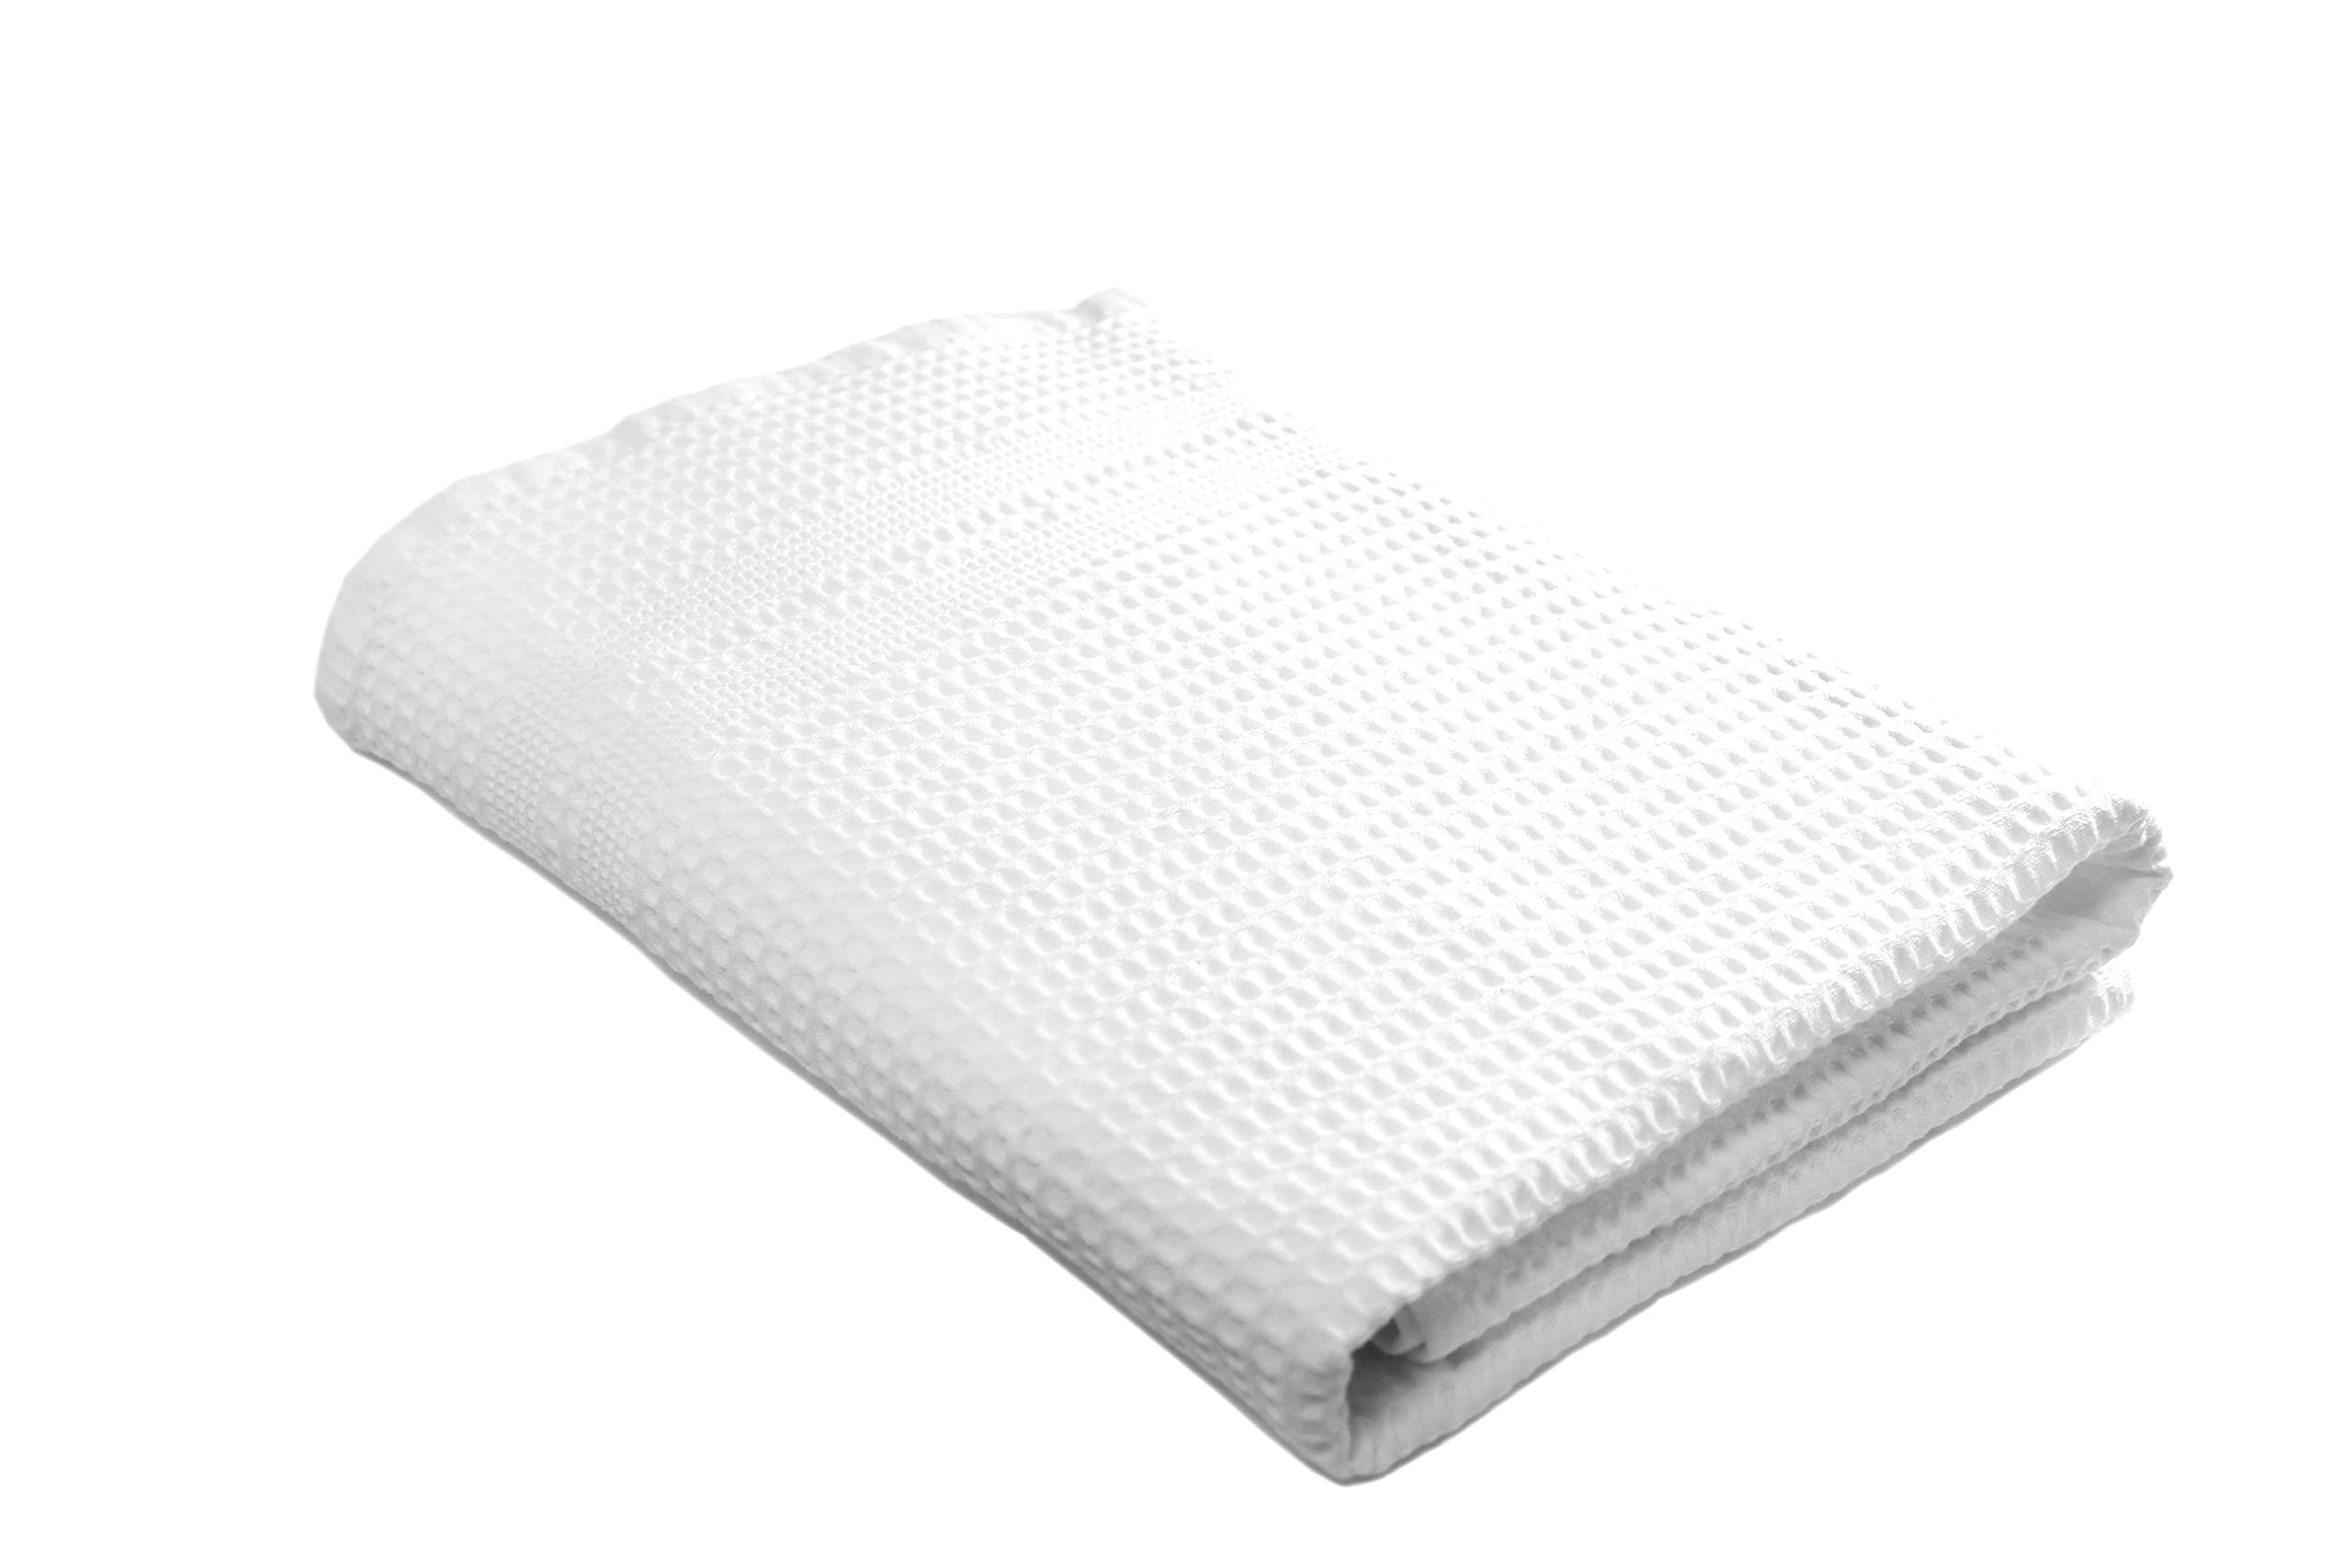 Gilden Tree Quick Dry Bath Towel Waffle Weave Luxury Bath Towels - Thin Eco-Friendly White Towels for Bathroom, Gym, Beach, Boat, Spa, Travel, Shower Towel (White)